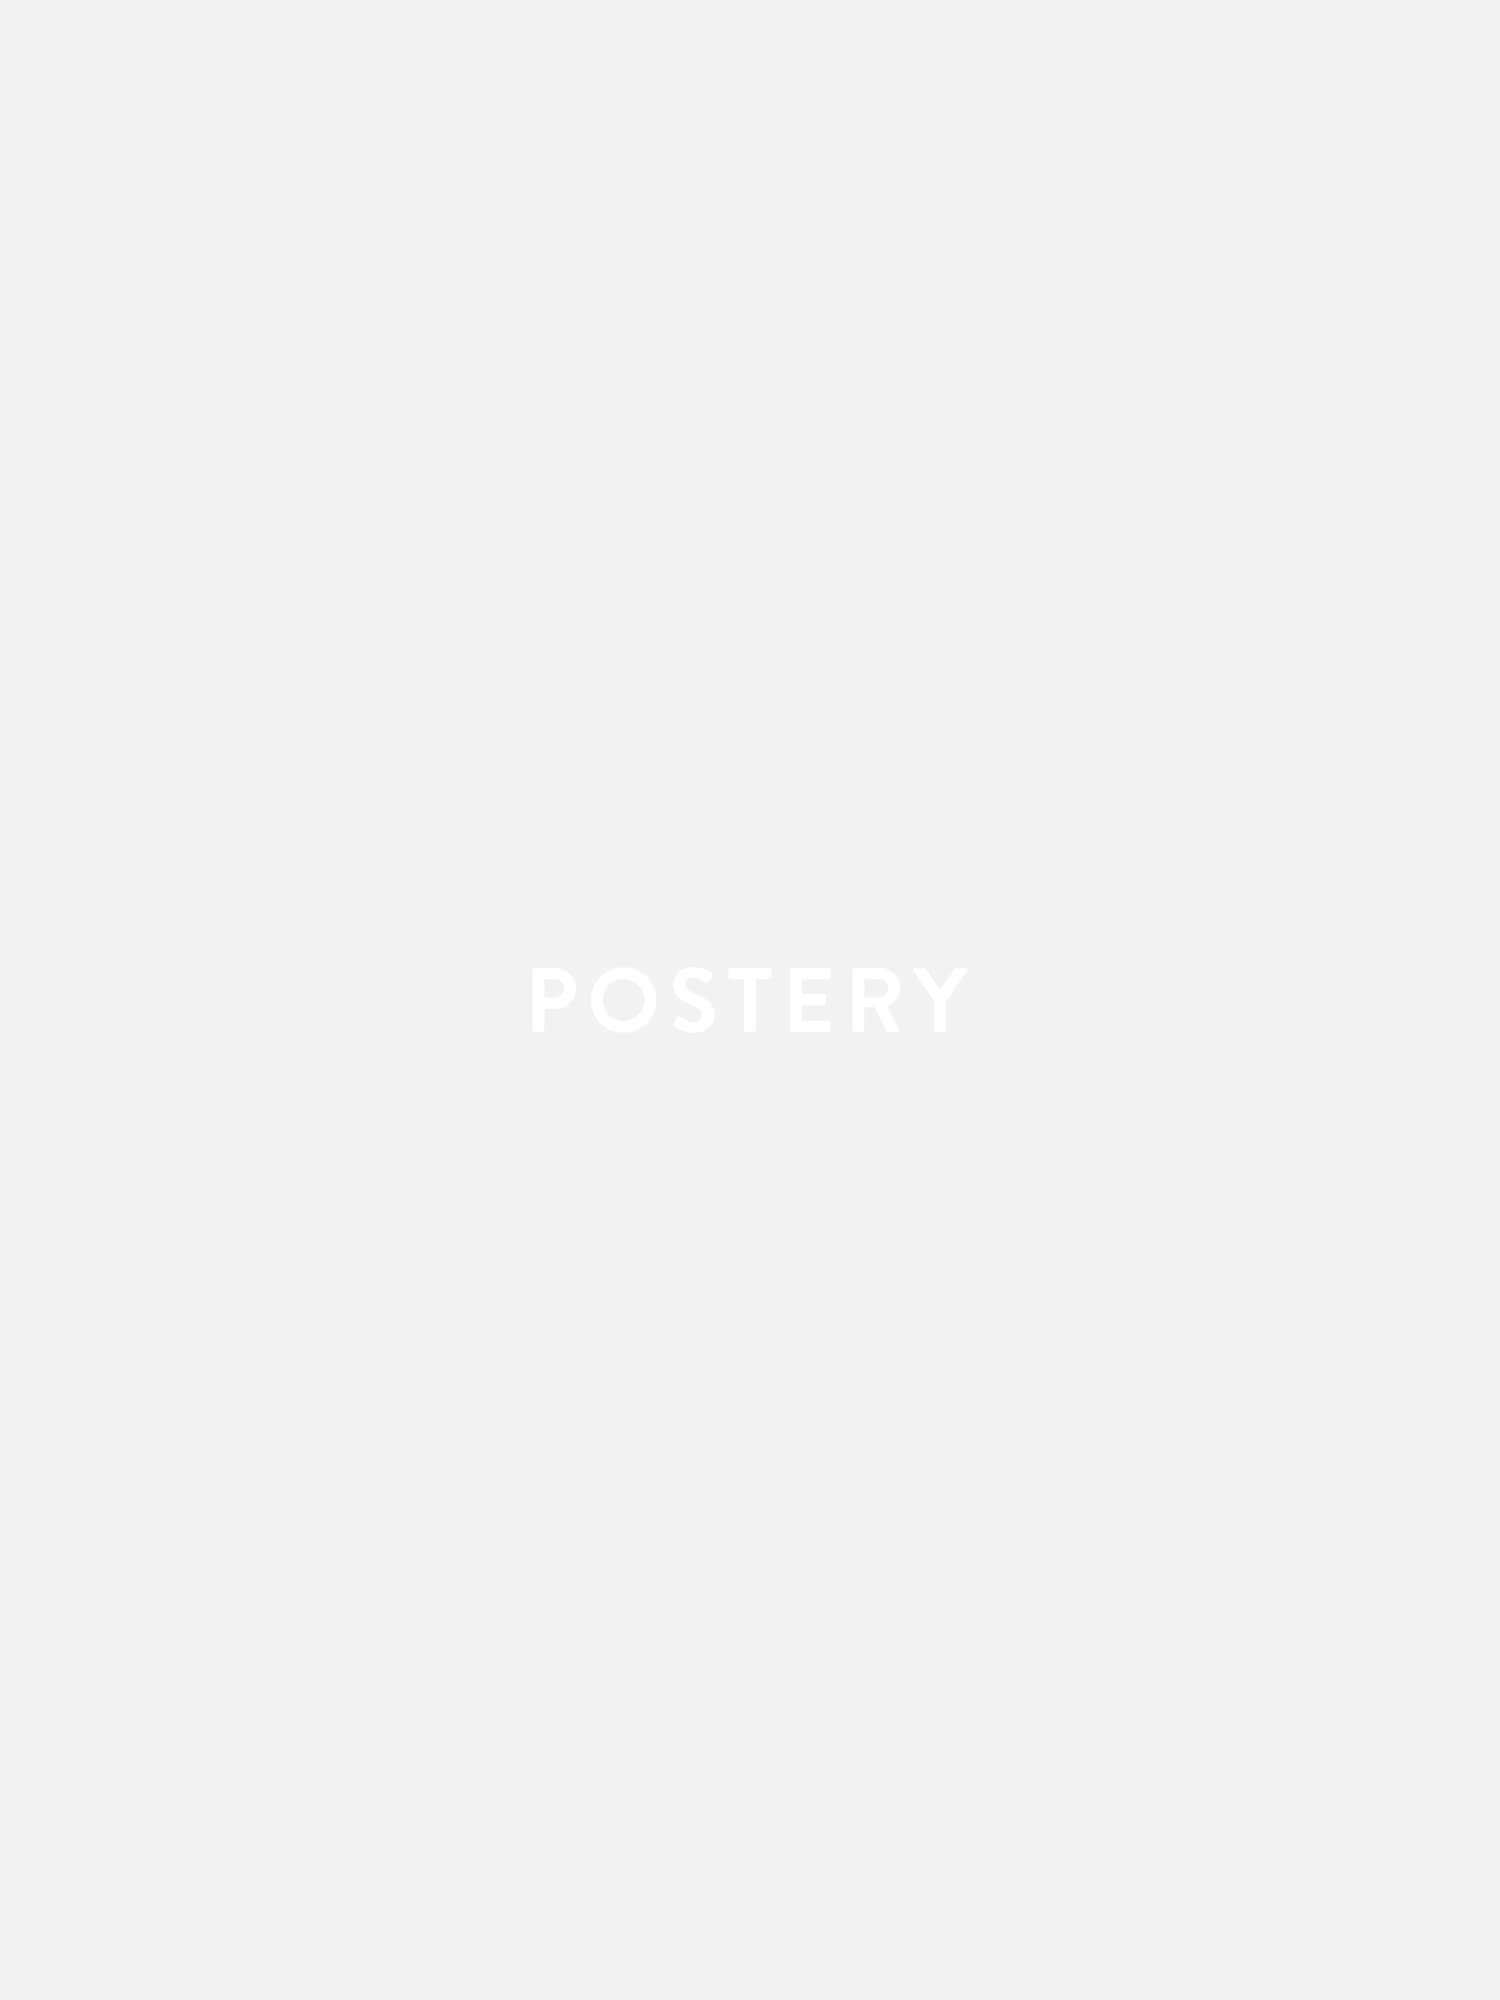 Abstract Watercolors Poster